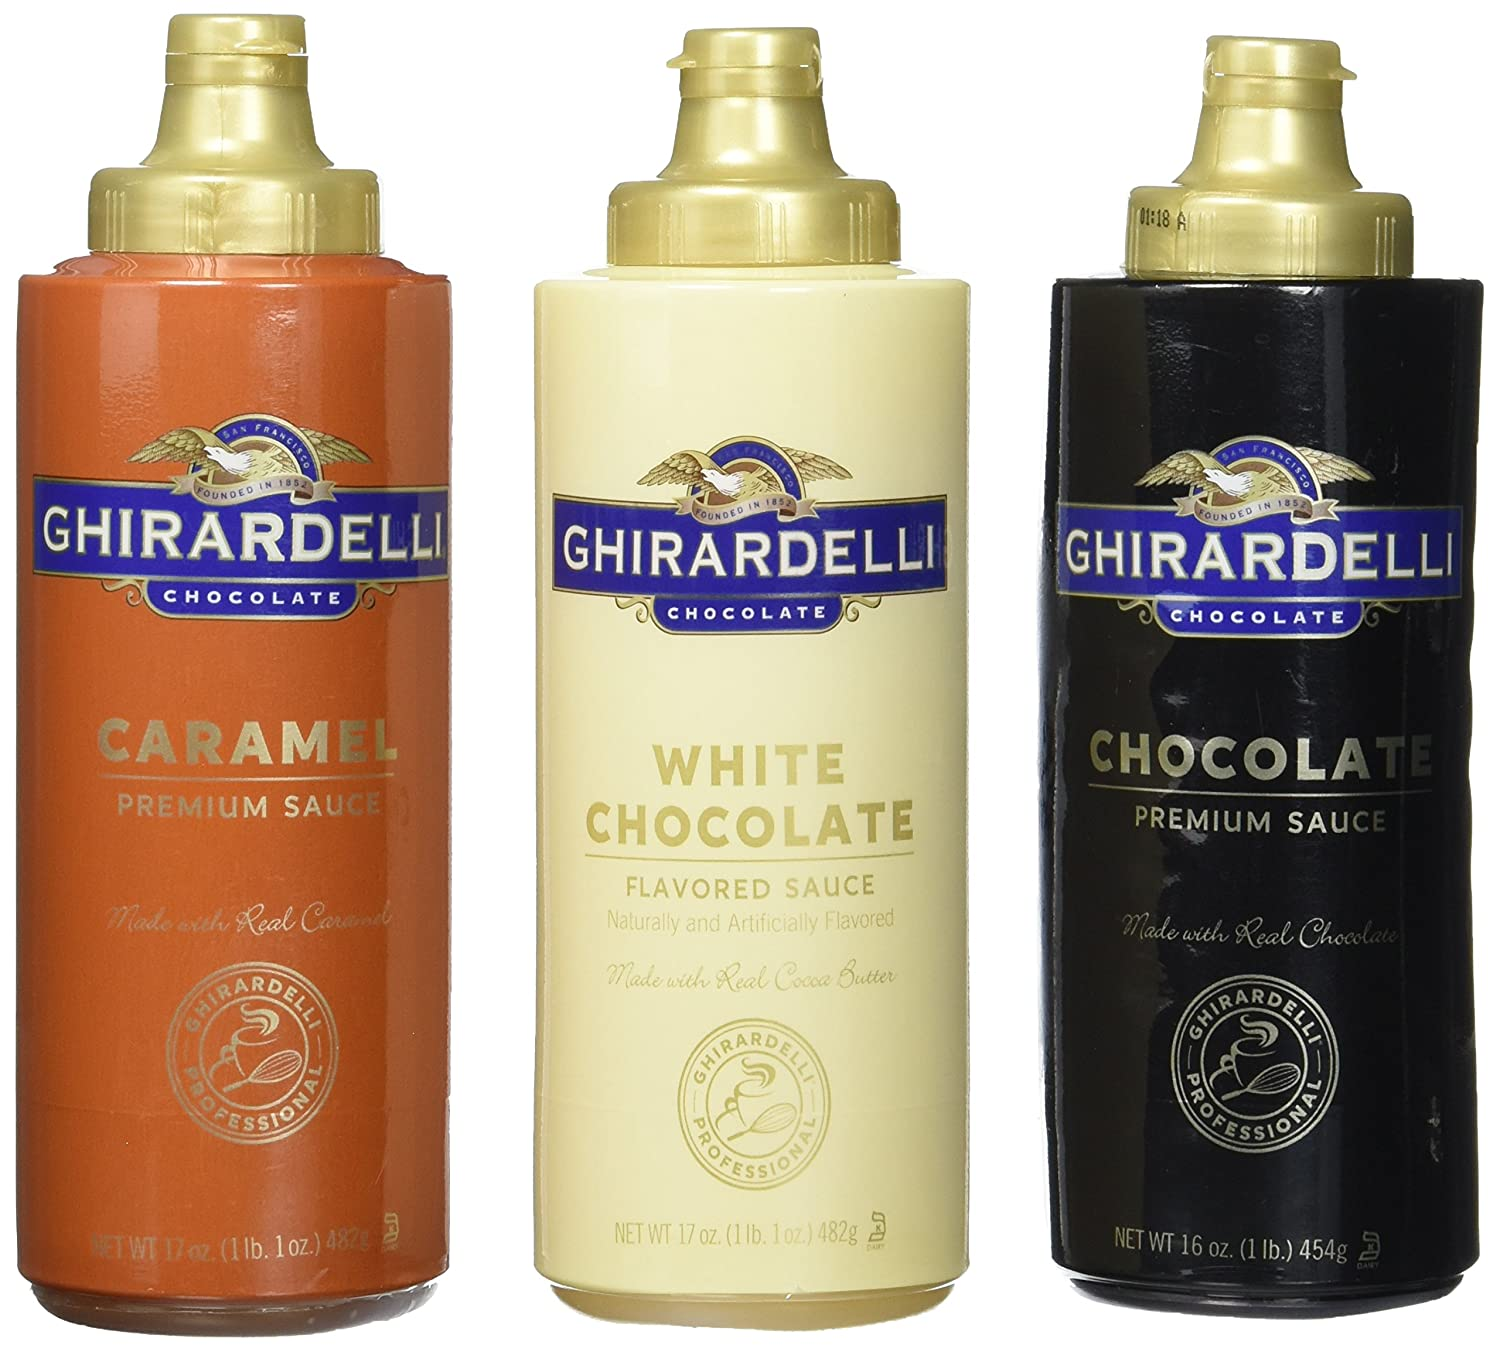 Ghirardelli Chocolate, White Chocolate, and Caramel Flavored Sauces,Squeeze Bottles (Pack of 3)